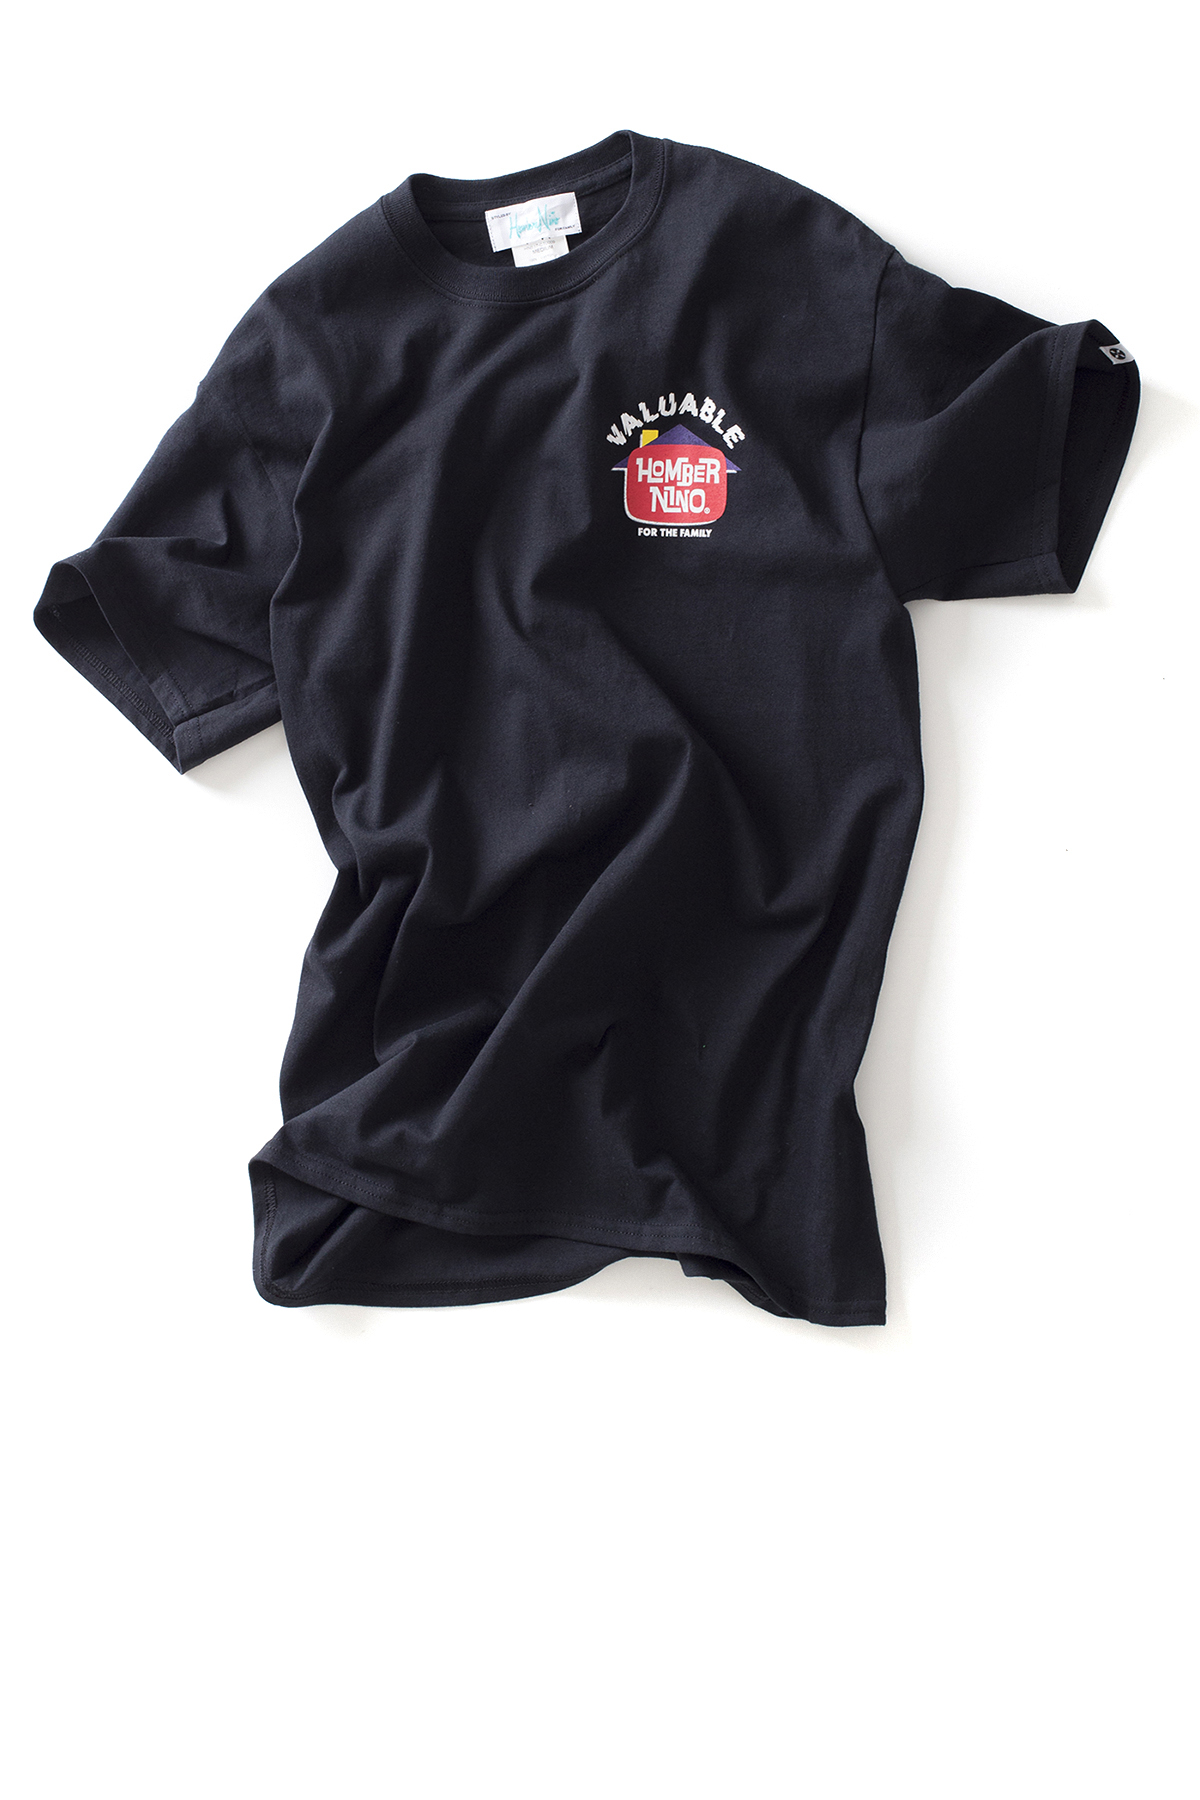 Hombre Niño : S/S Print Tee Valuable (Black)